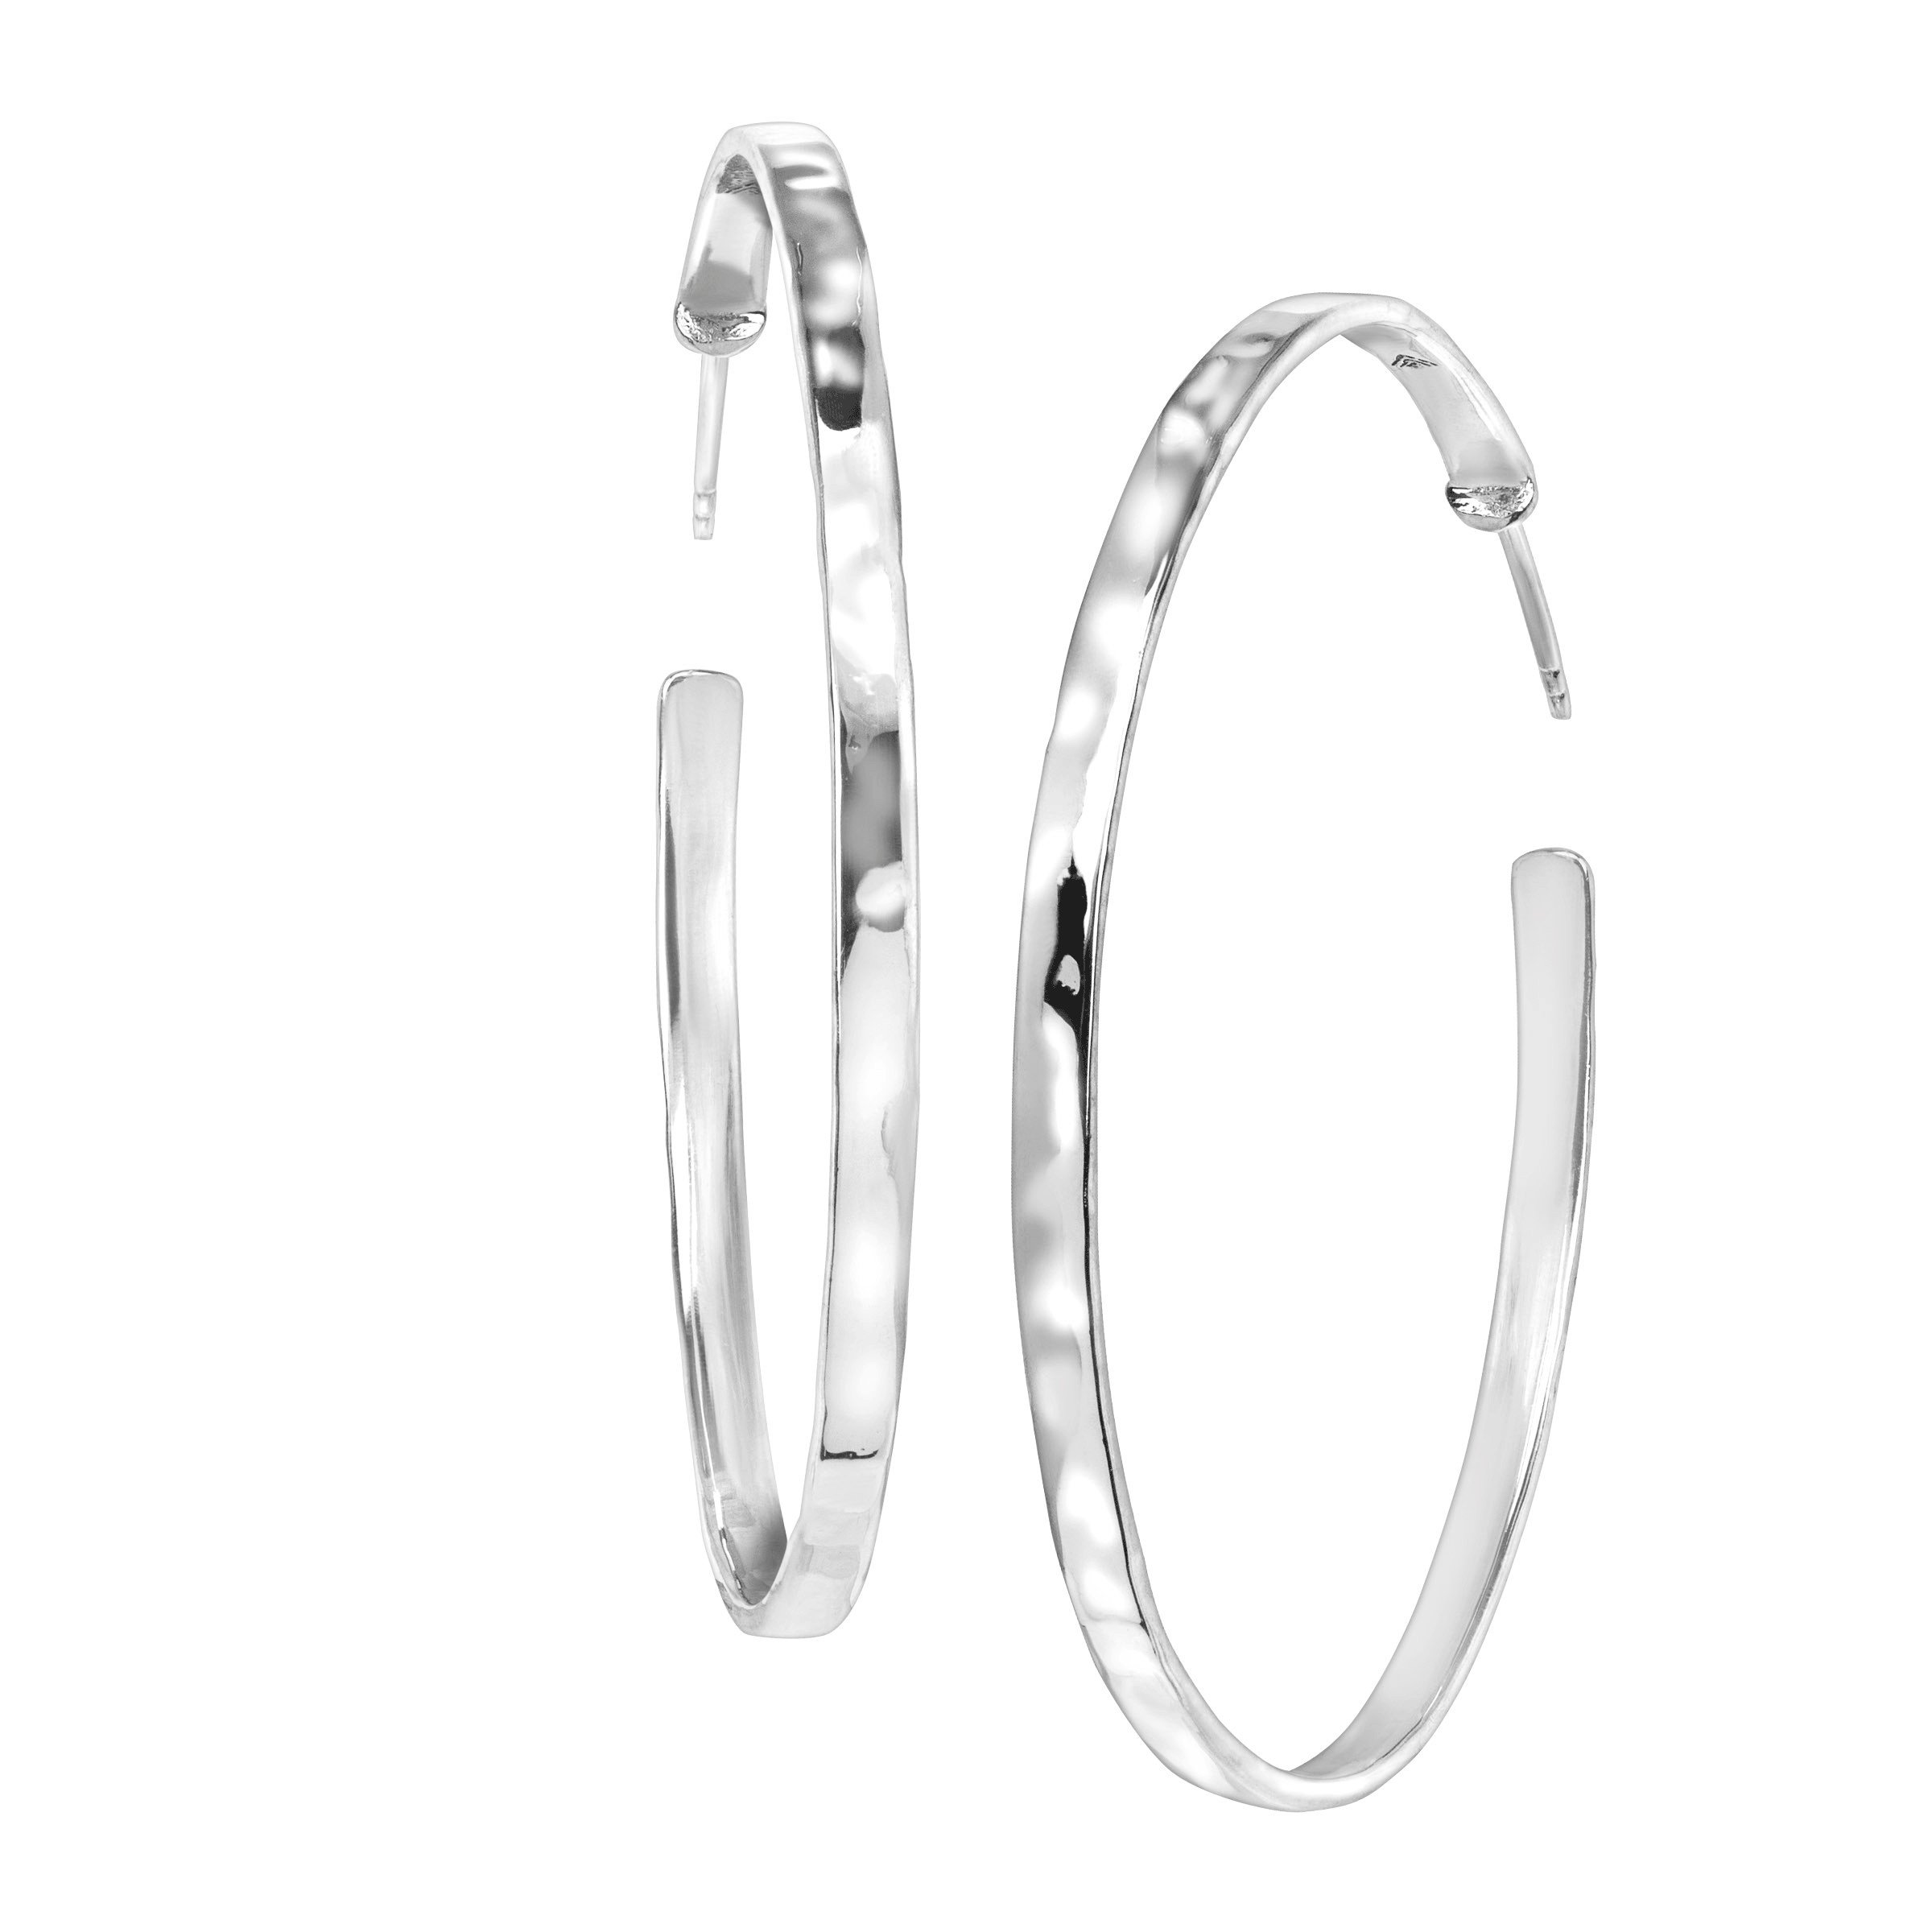 Silpada 'Circle Up' Hoop Earrings in Hammered Sterling Silver